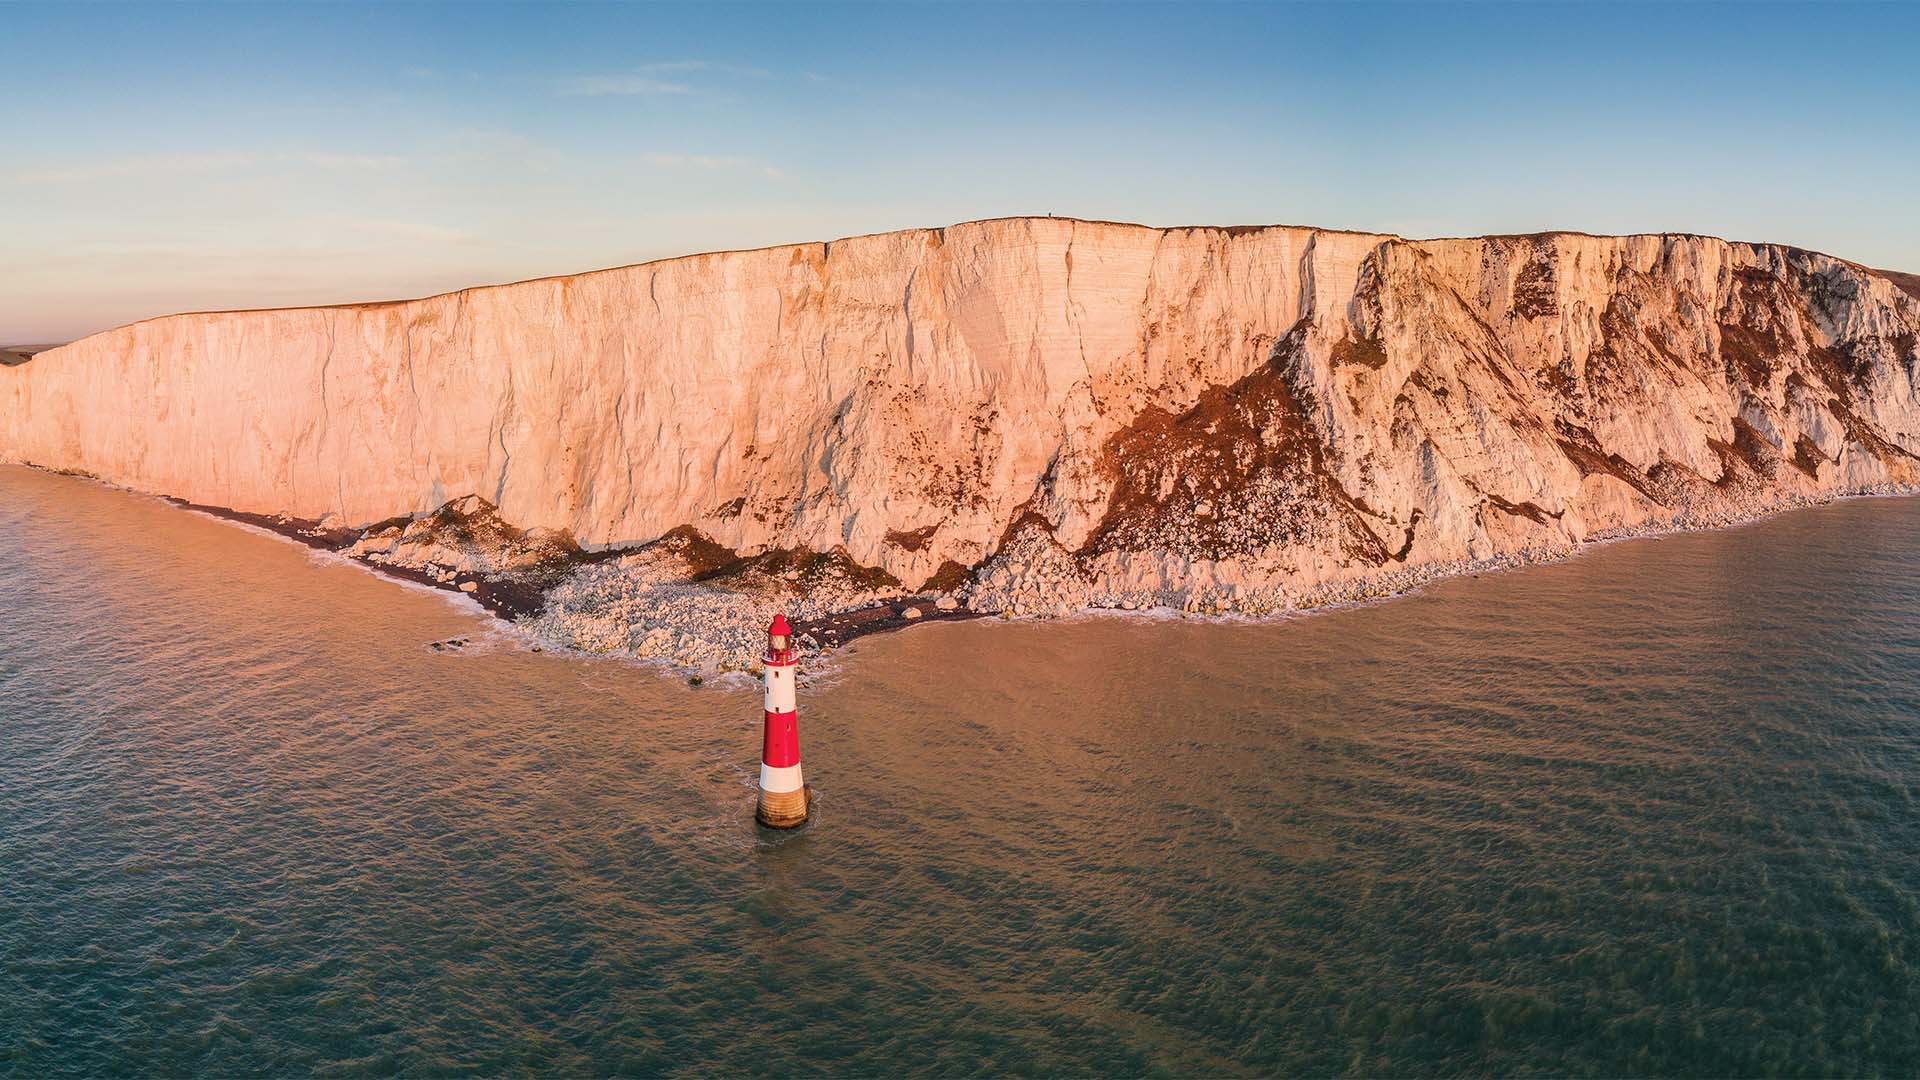 Beachy head drone photo from Drone Photography Masterclass